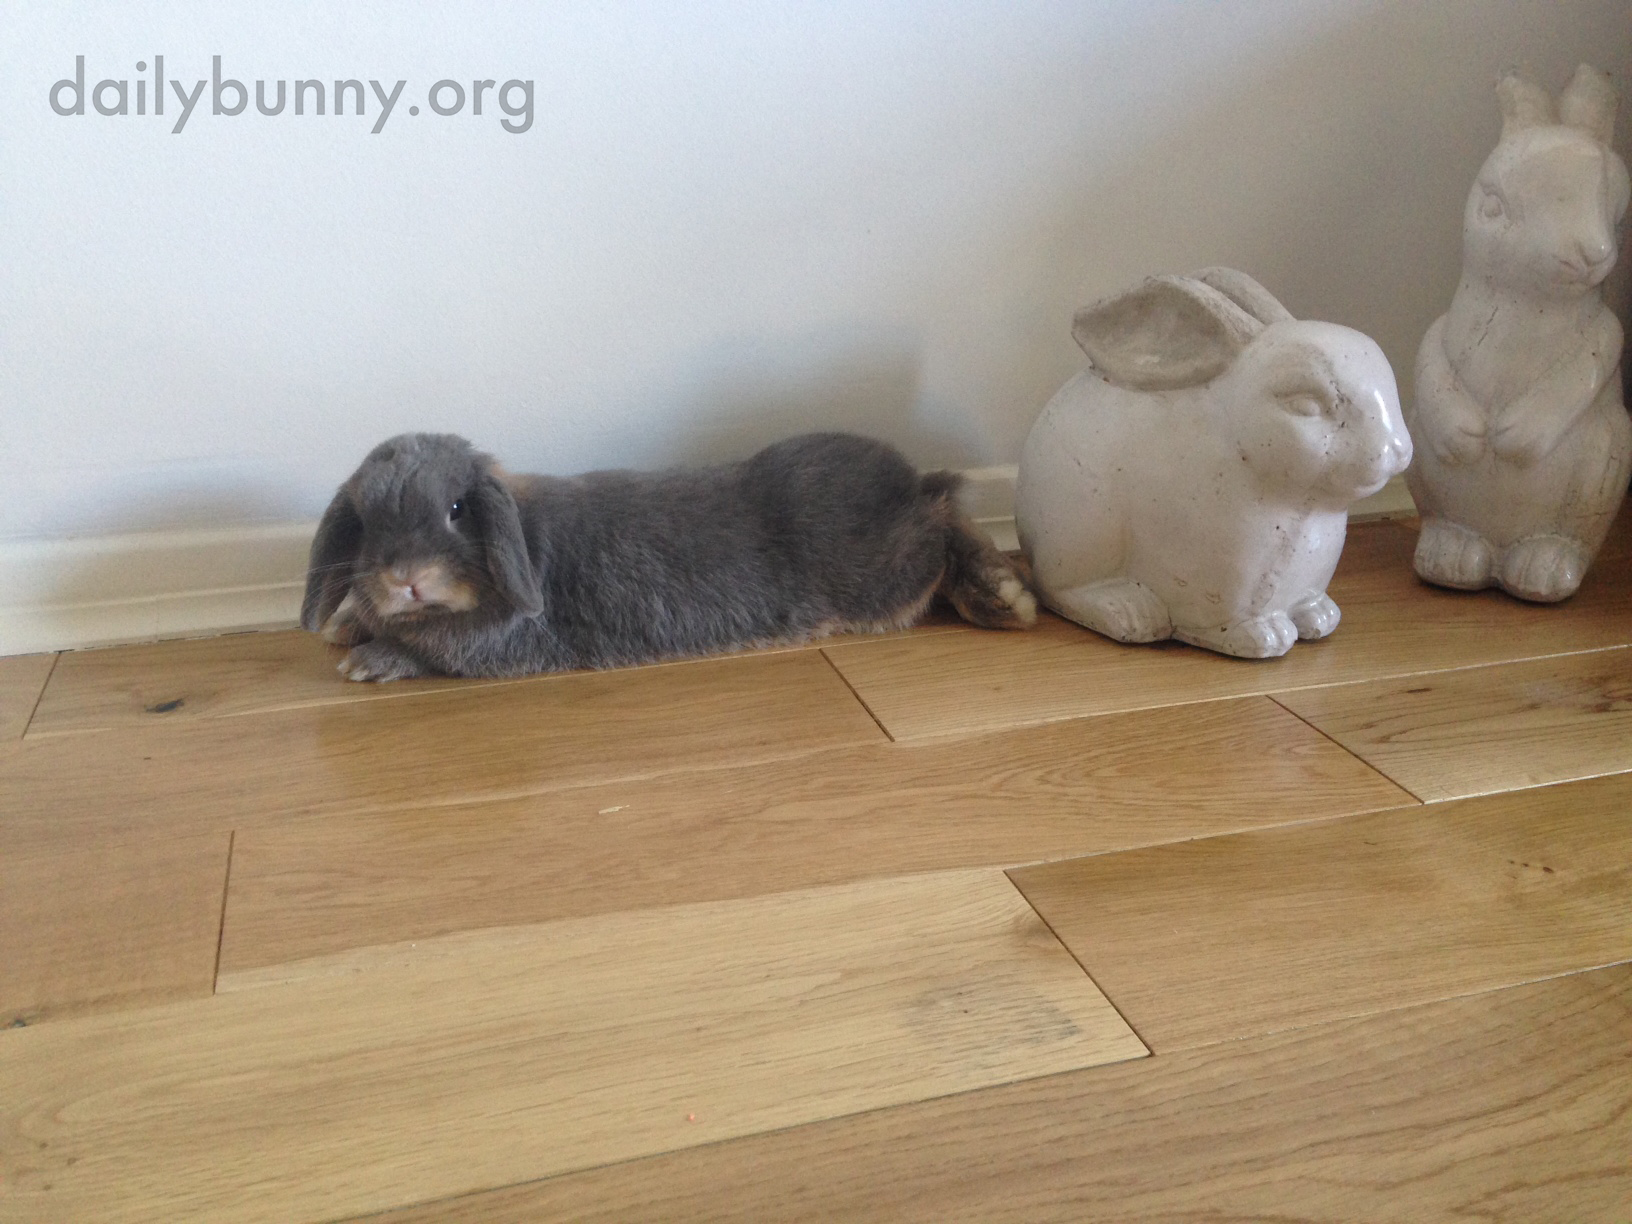 Can't a Grumpy Bunny Just Lie Down without a Human Ooh-ing and Aww-ing and Taking Pictures? 2